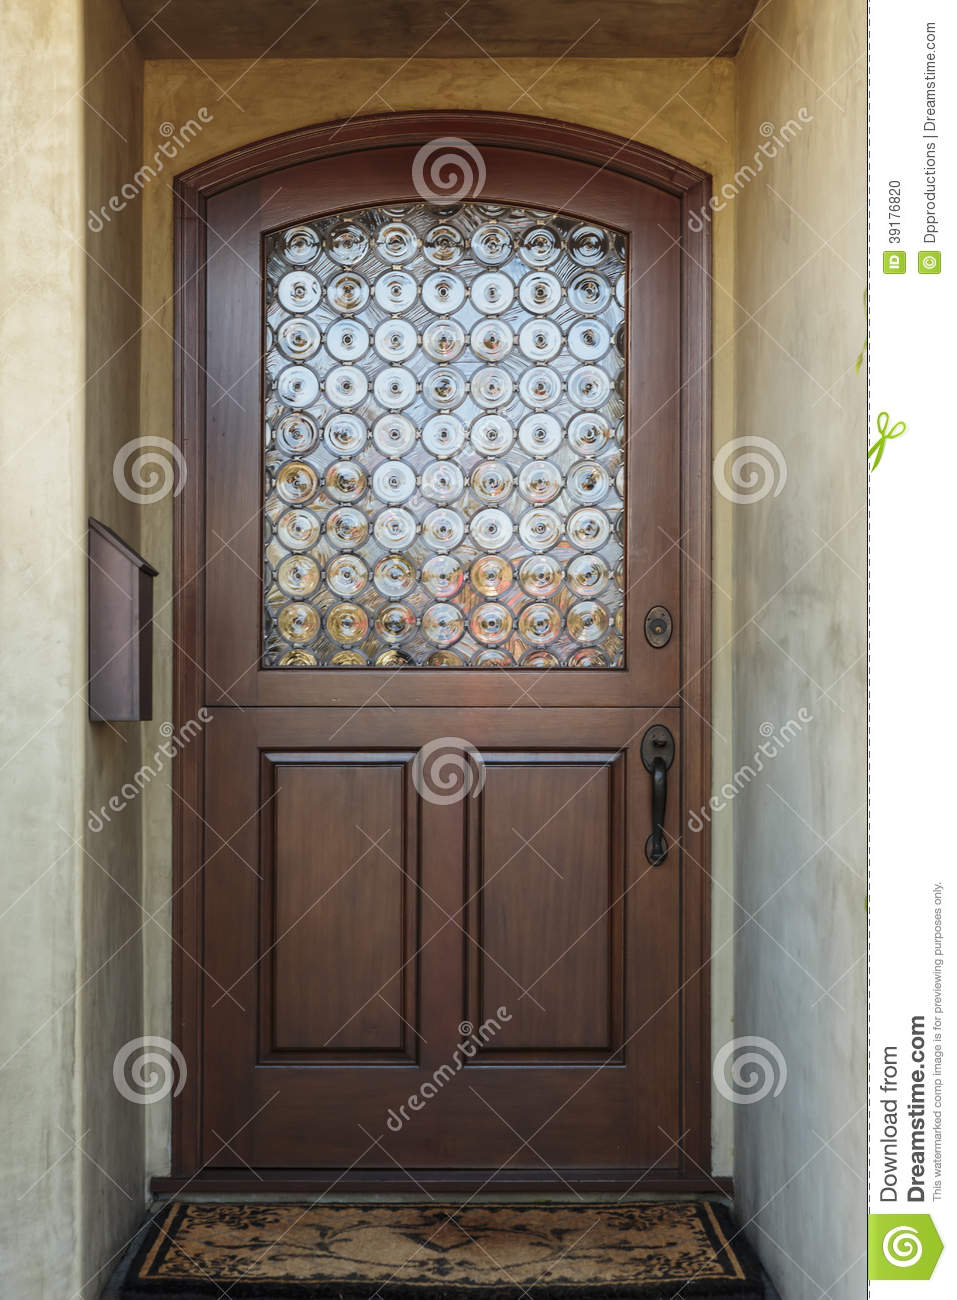 Wooden front door of home with ornate glass detail stock for Puertas madera con cristal